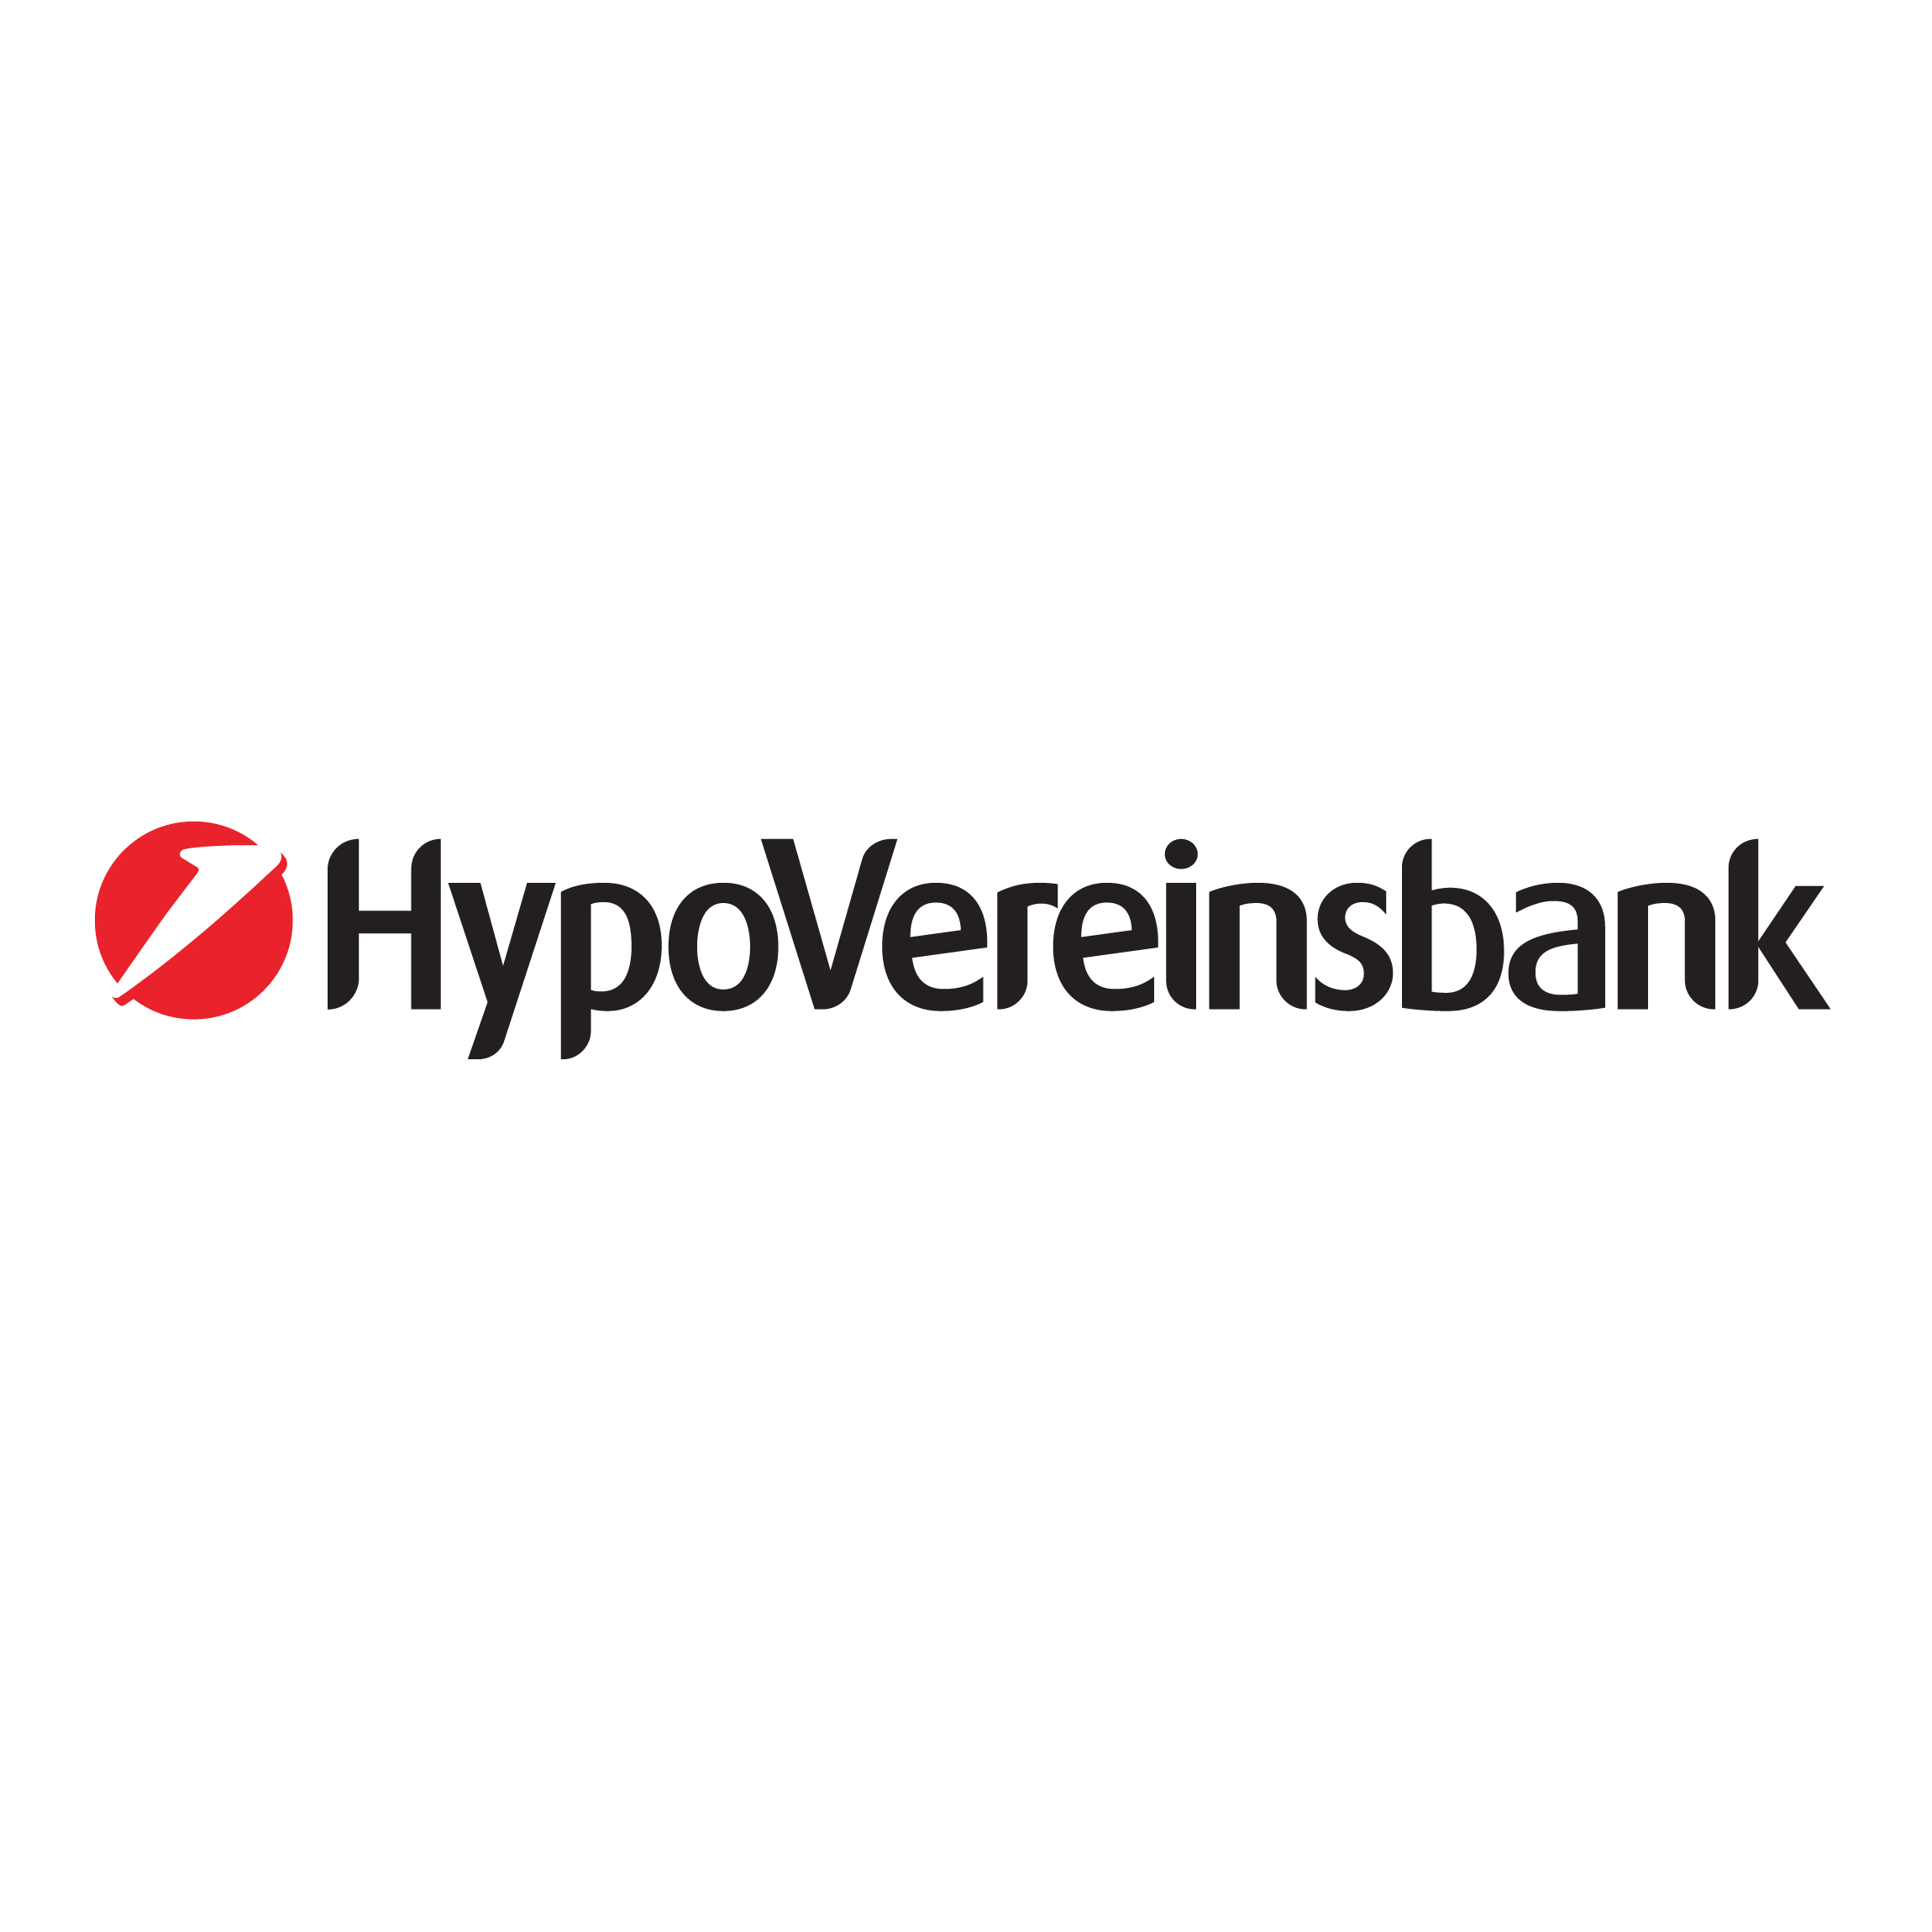 HypoVereinsbank Private Banking Leipzig